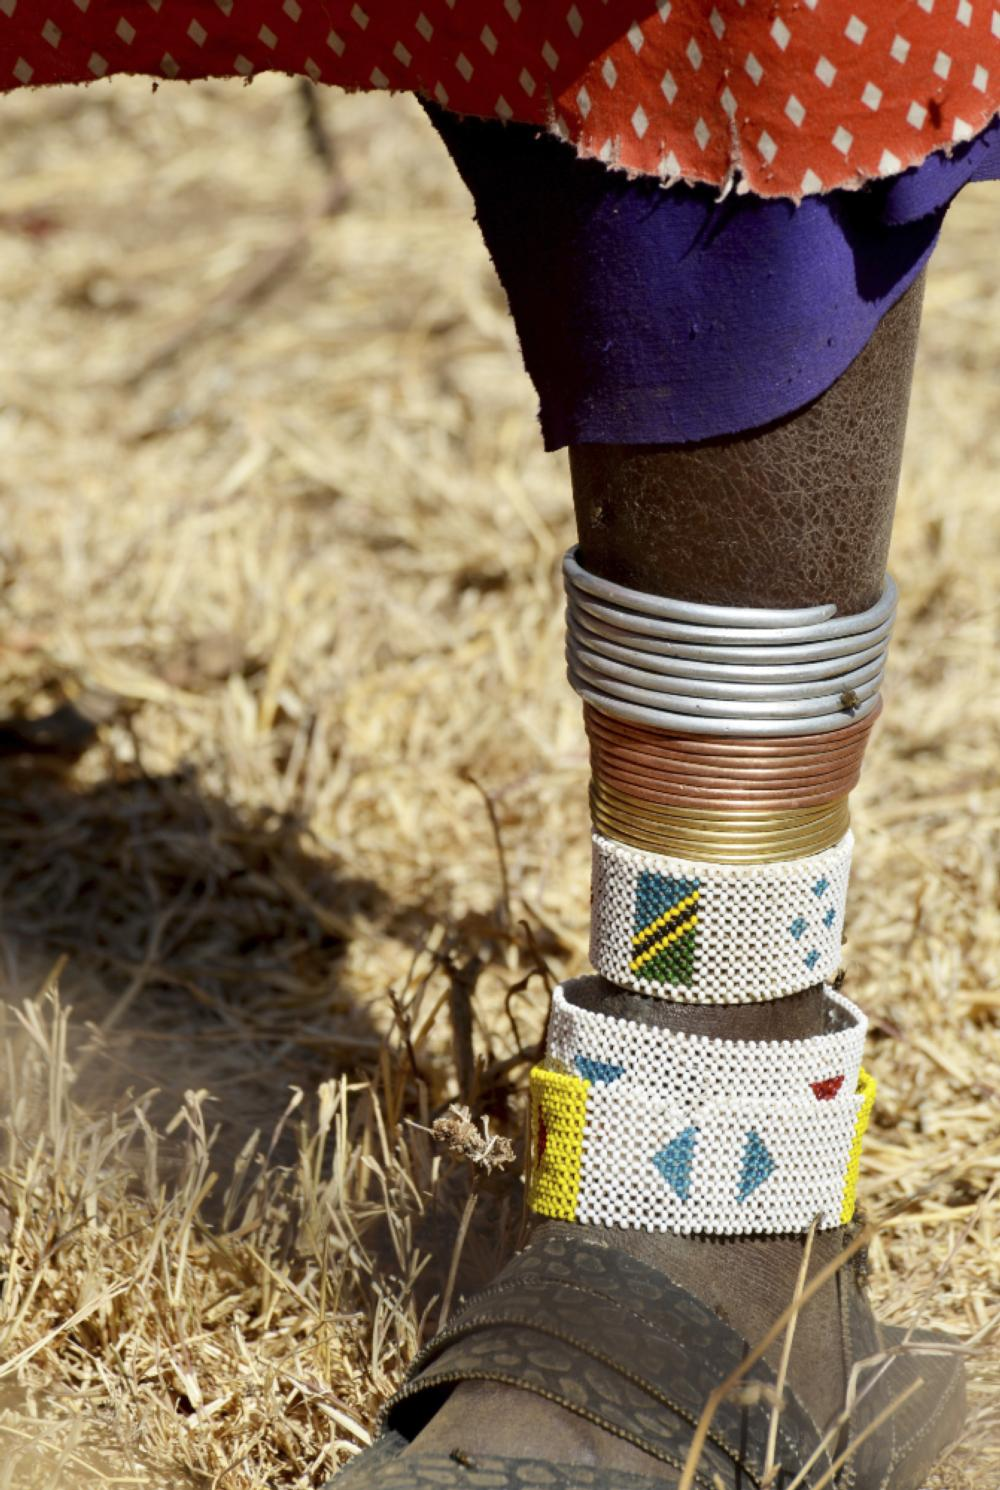 Tanzania native's leg with bands